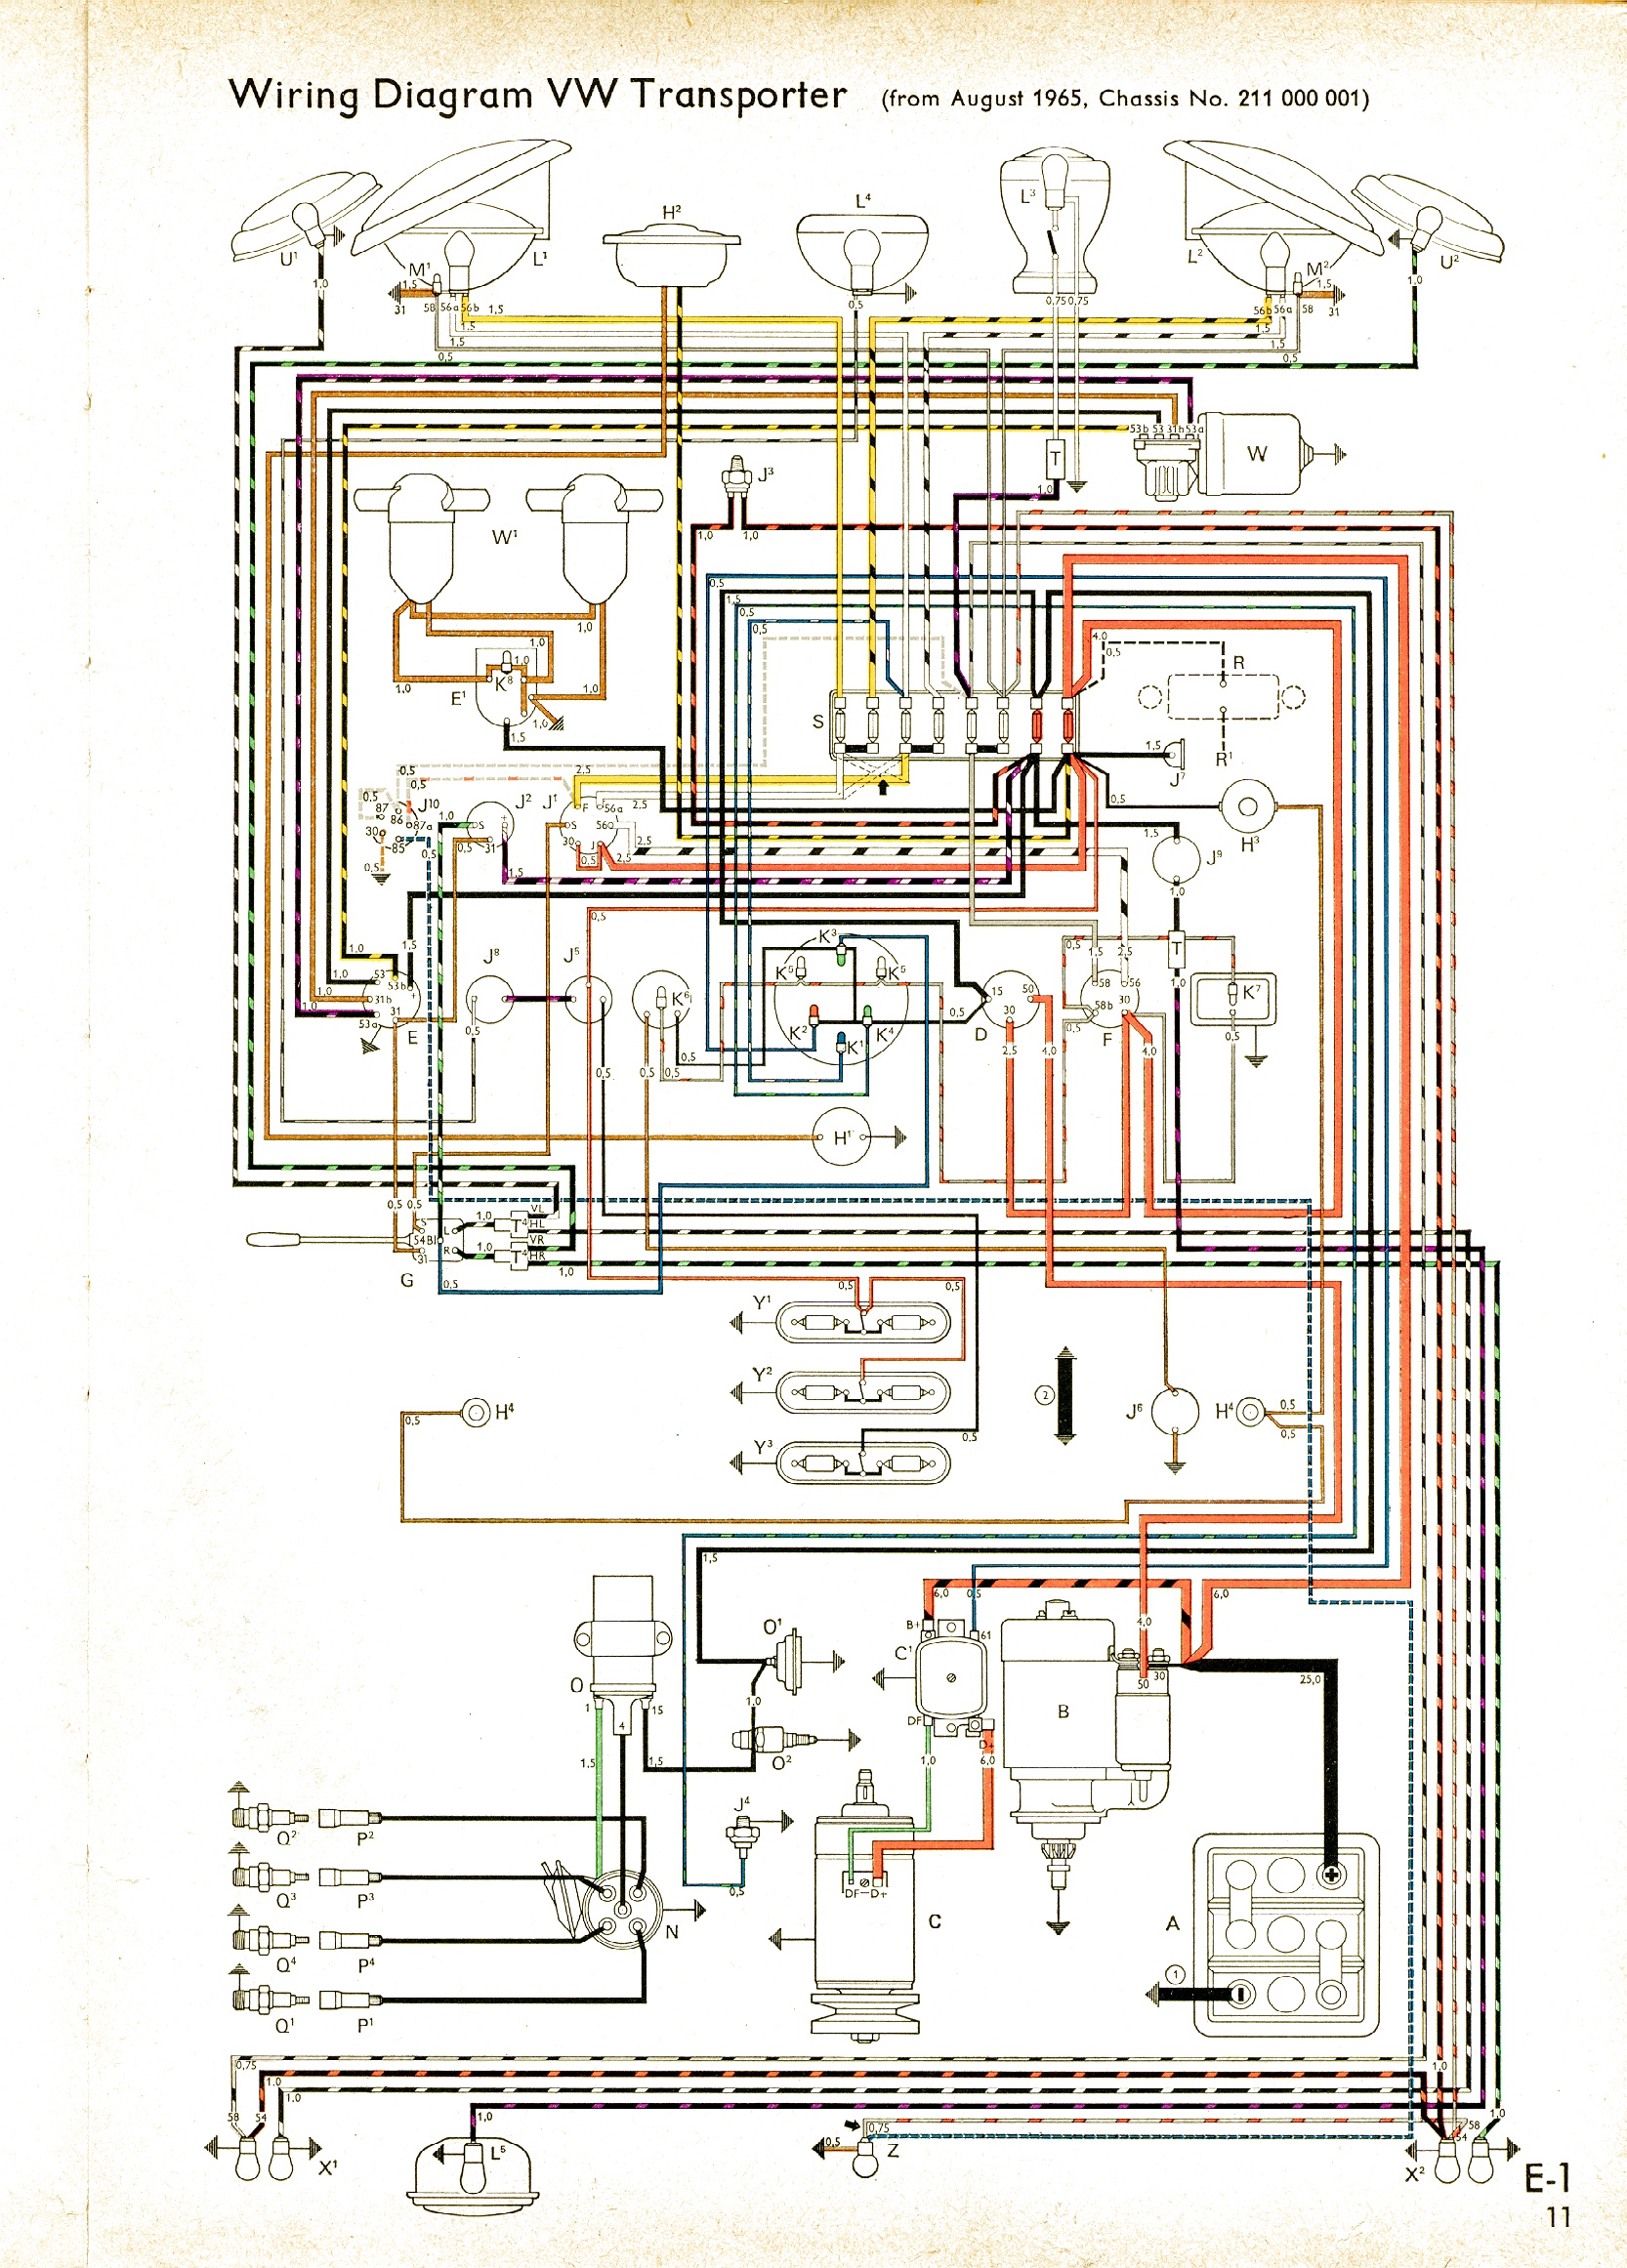 bus 65 vintagebus com vw bus (and other) wiring diagrams vw beetle 2002 radio wiring diagram at bakdesigns.co